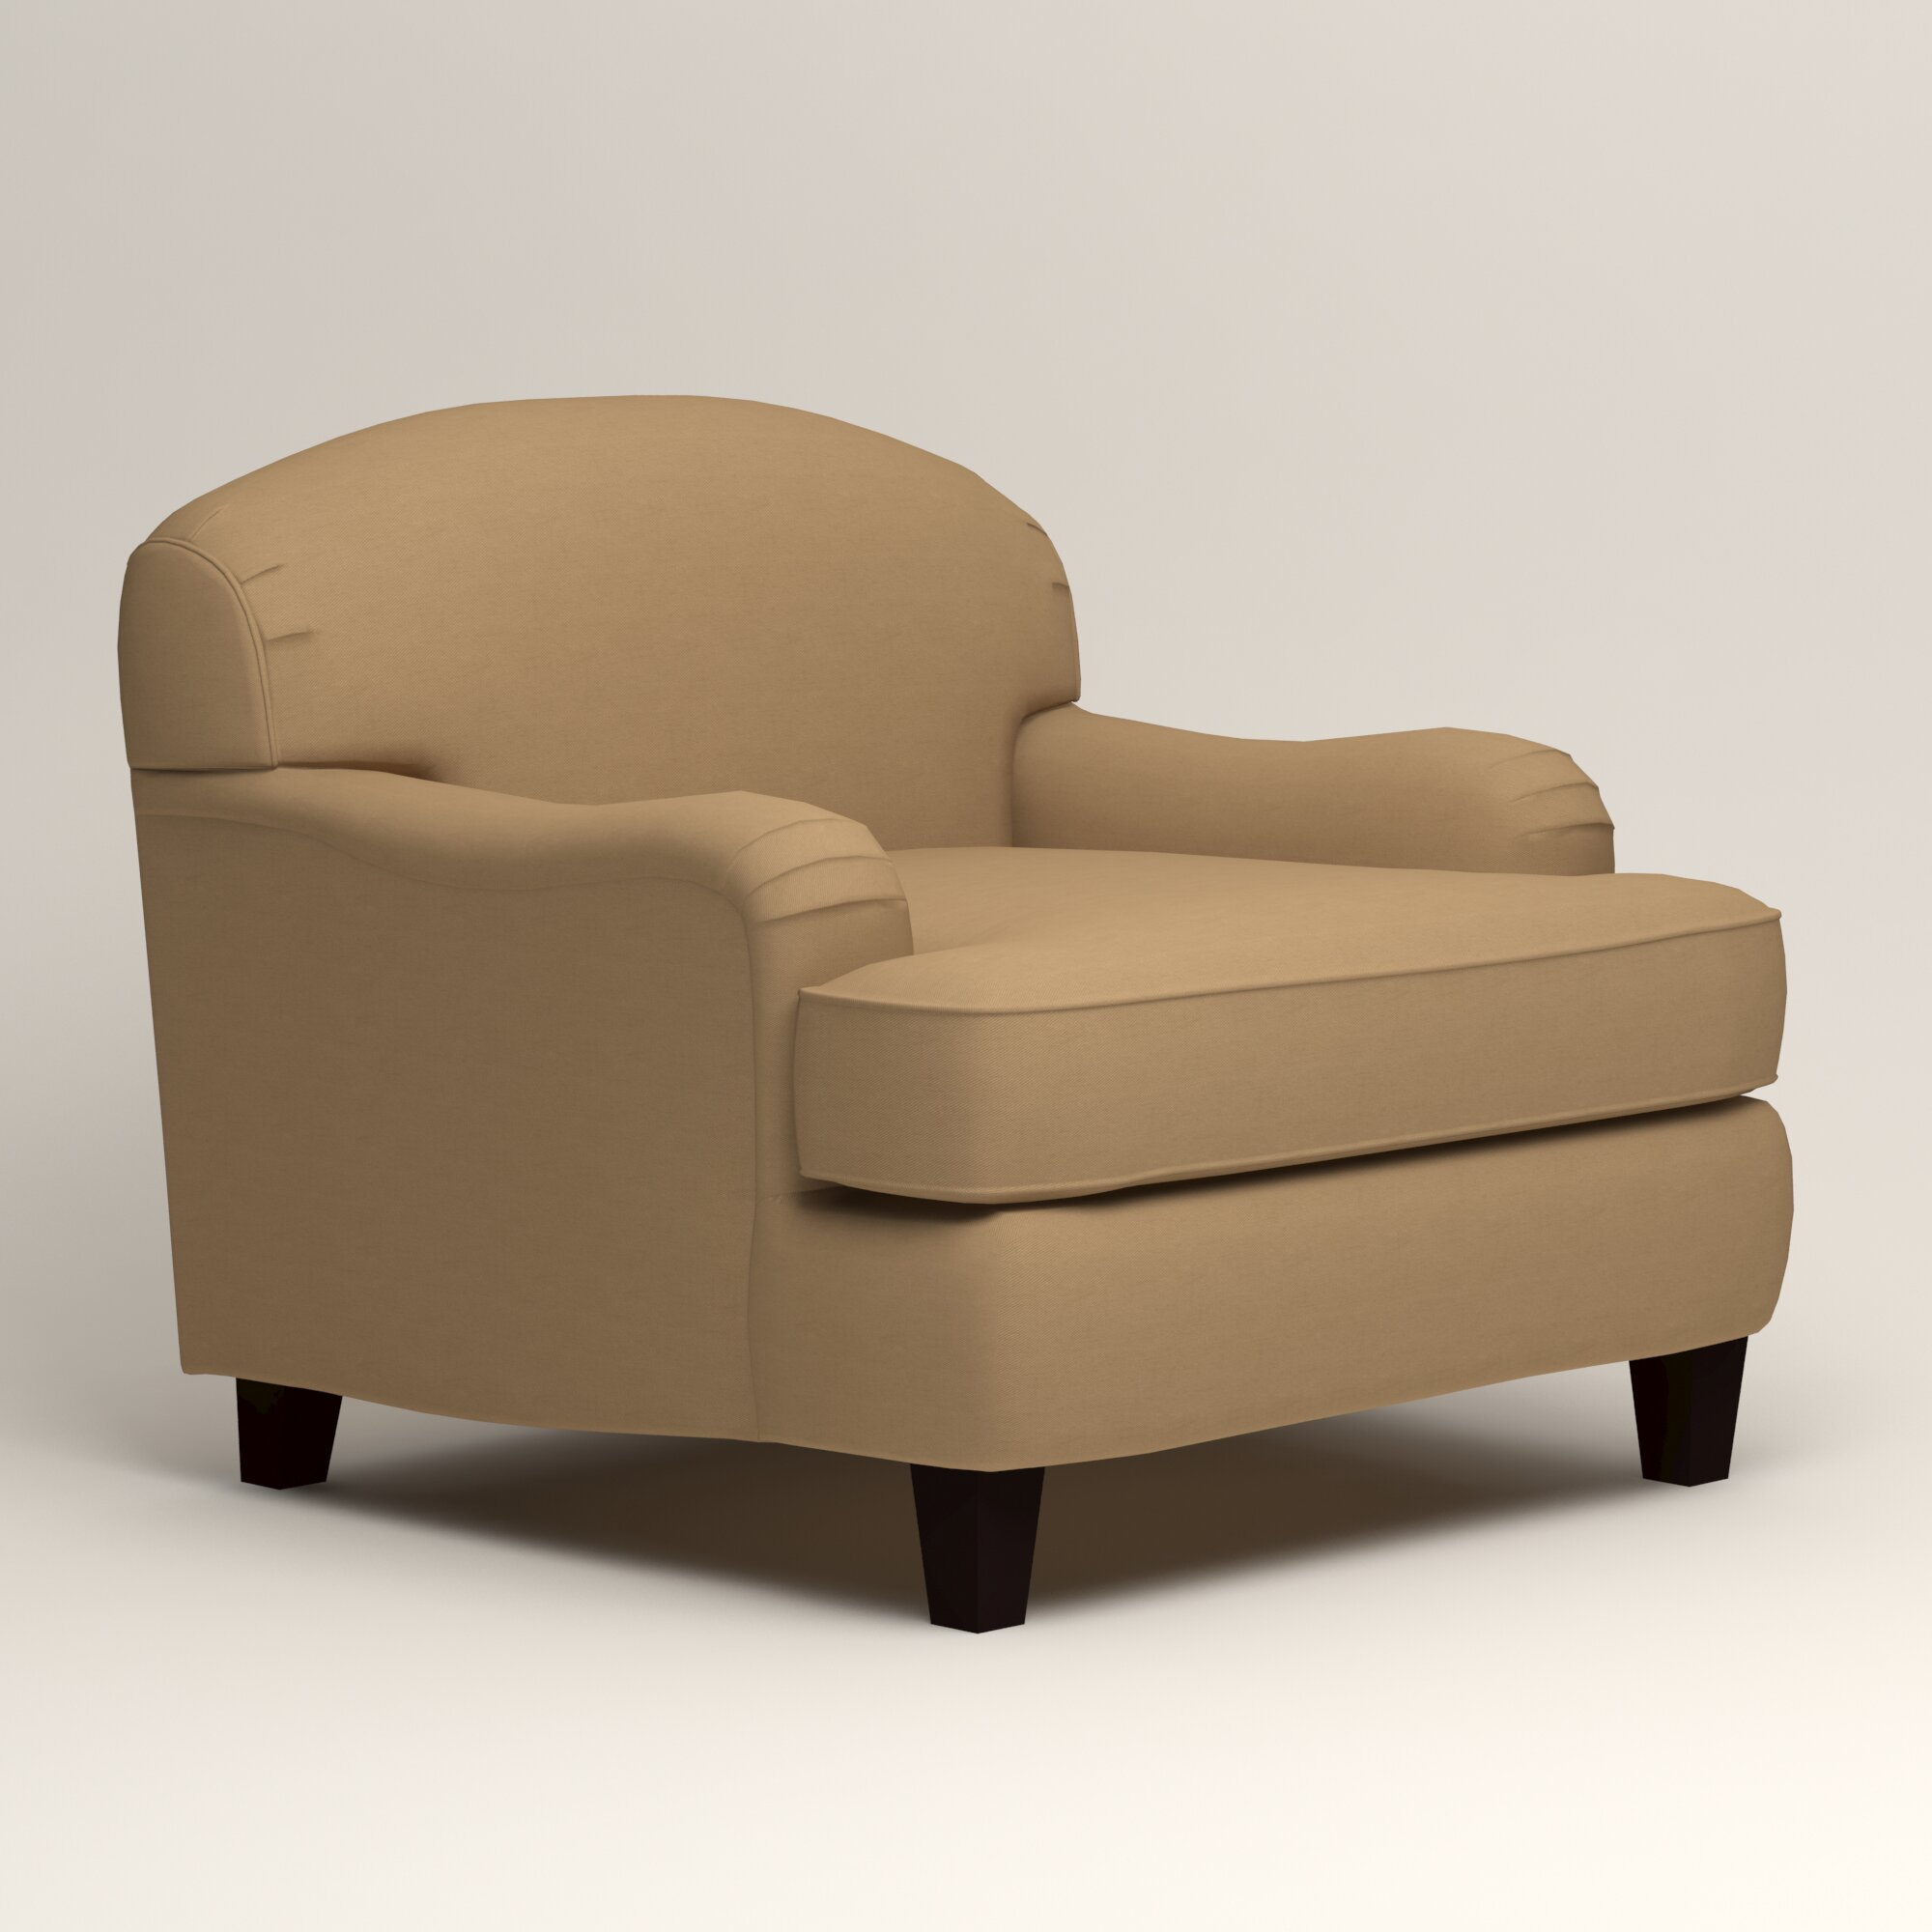 Lighting Shop Sale Cheshire: Cheshire Club Chair And A Half & Reviews